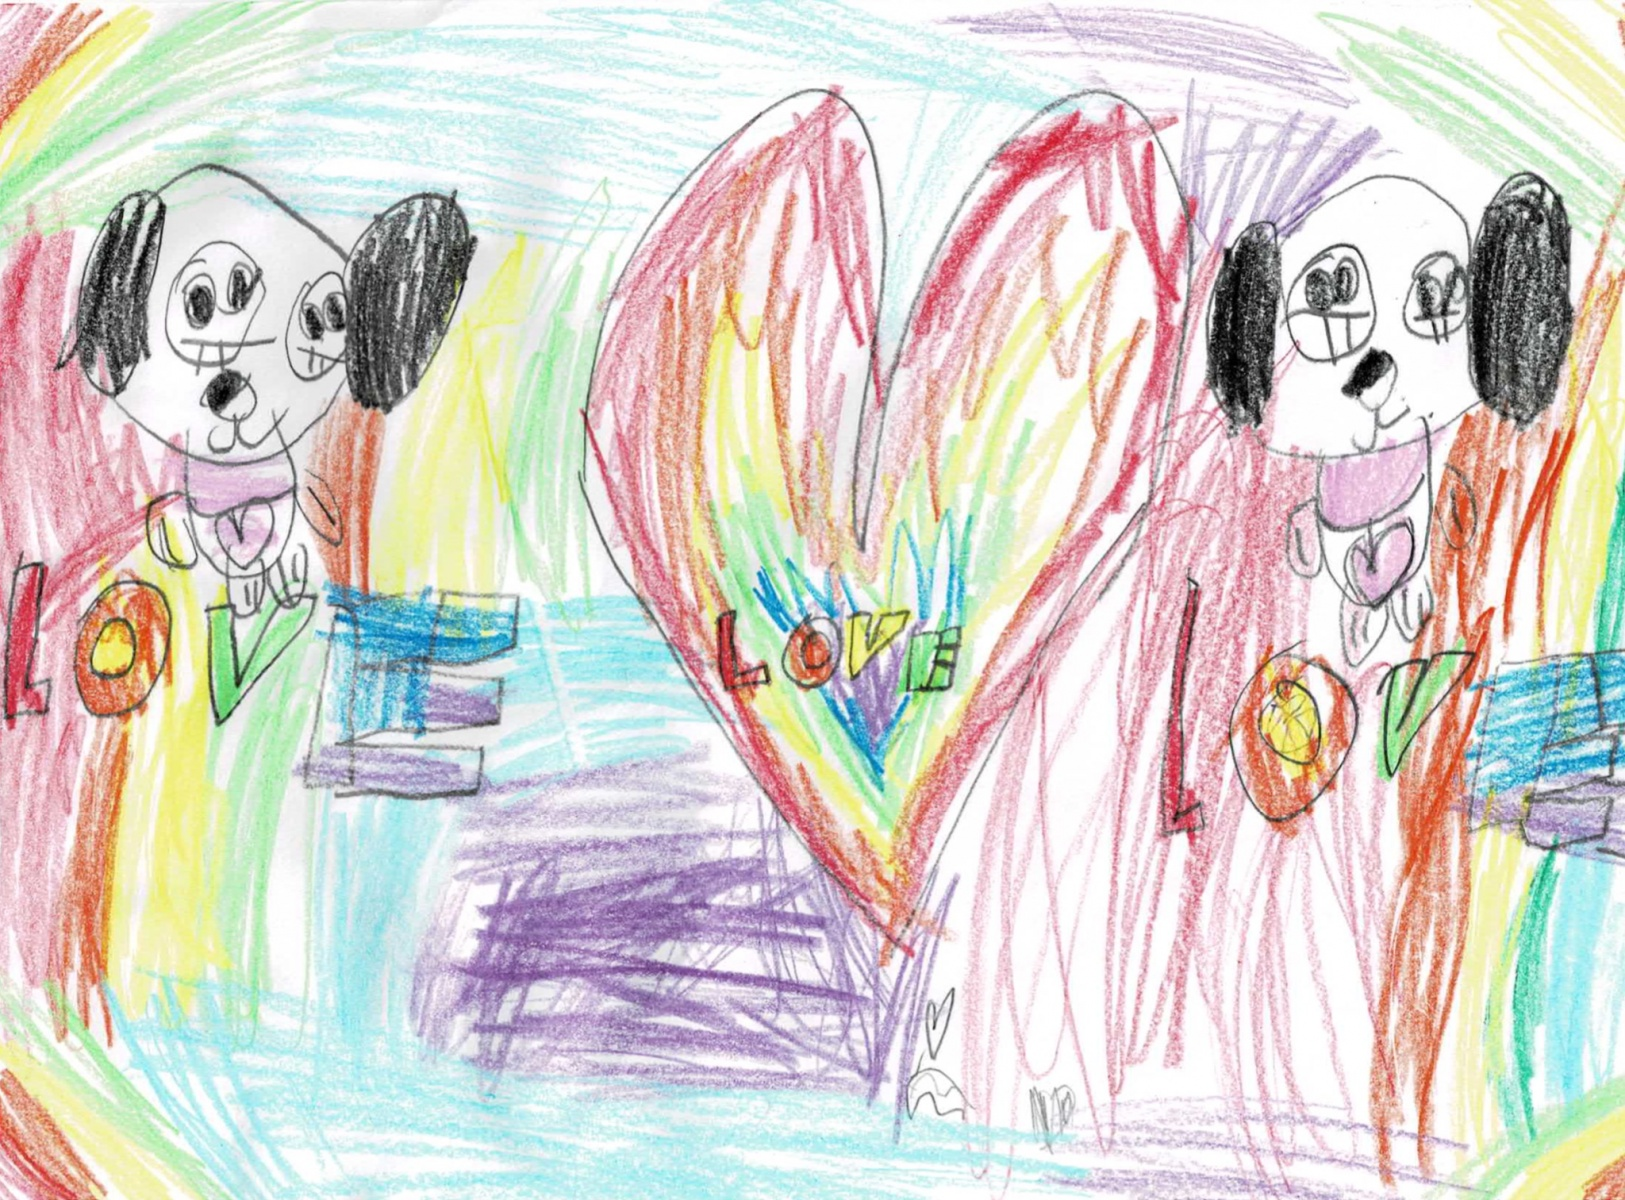 Genevieve - Age 5 - I love my Dog